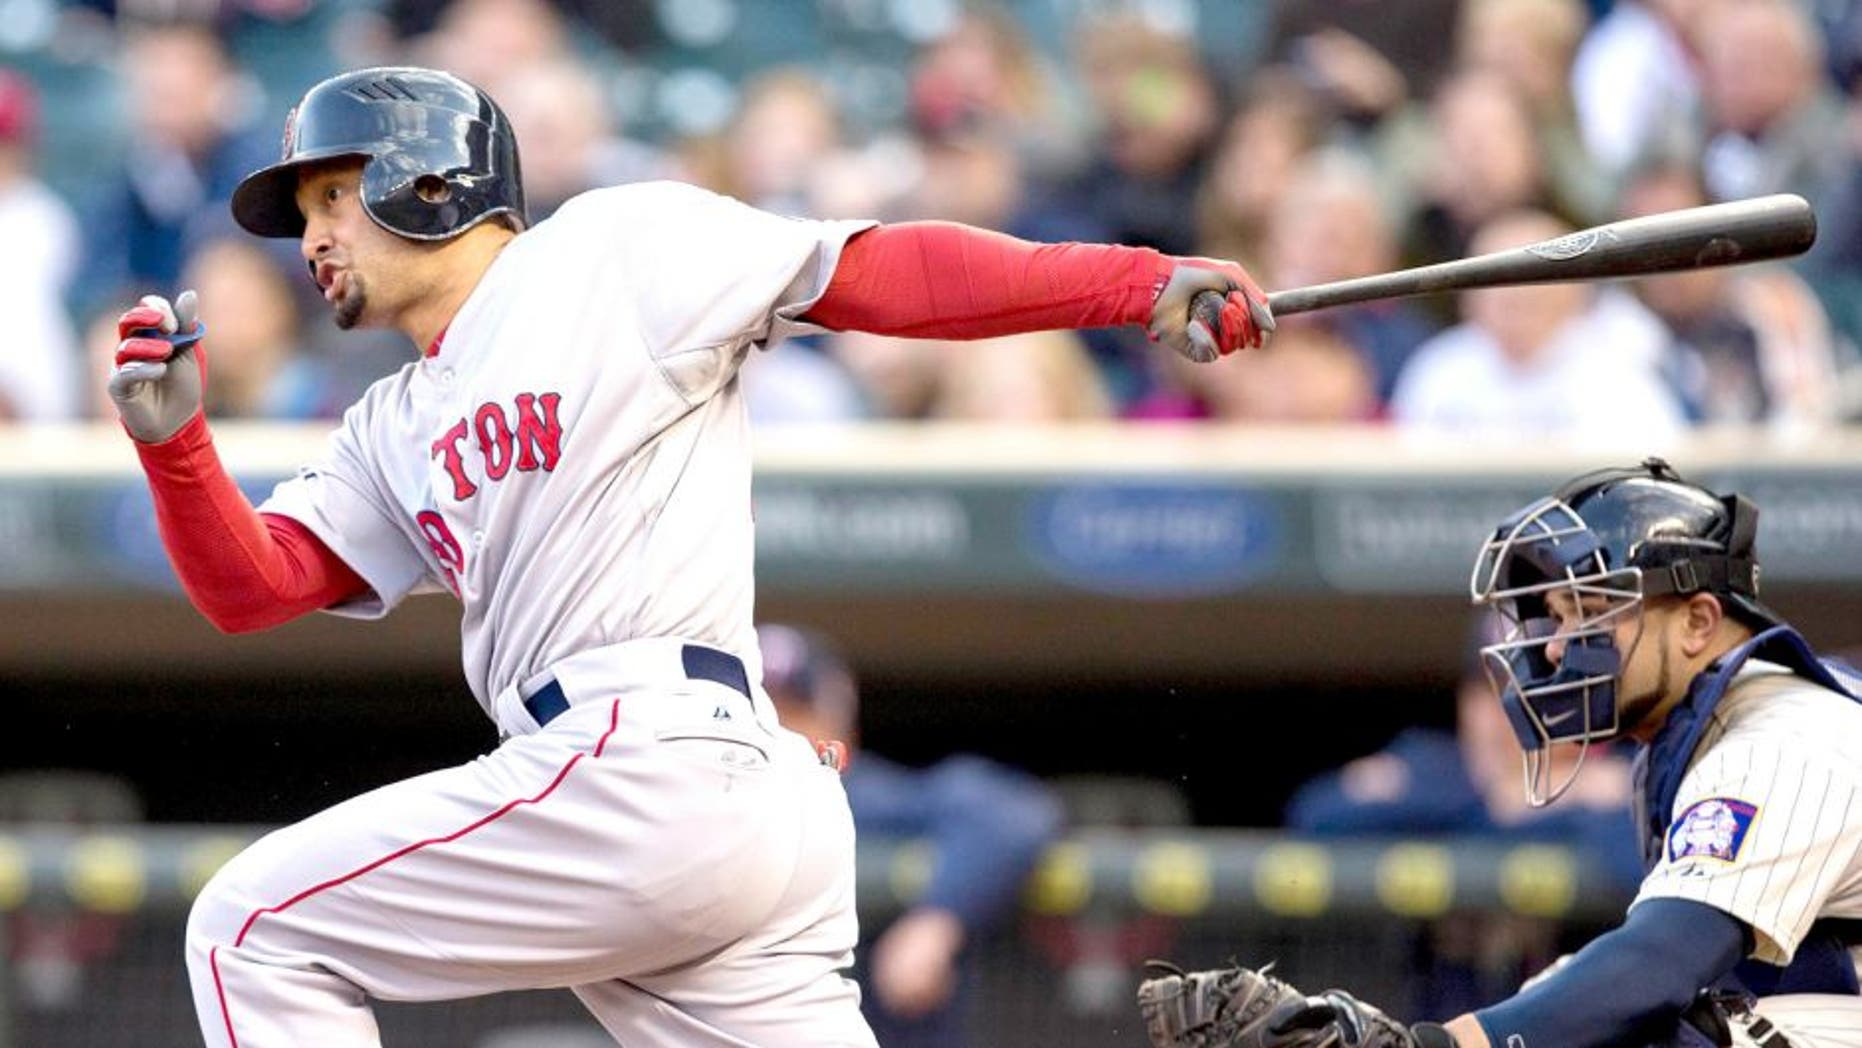 May 14, 2014; Minneapolis, MN, USA; Boston Red Sox right fielder Shane Victorino (18) hits a single in the first inning against the Minnesota Twins at Target Field. Mandatory Credit: Jesse Johnson-USA TODAY Sports